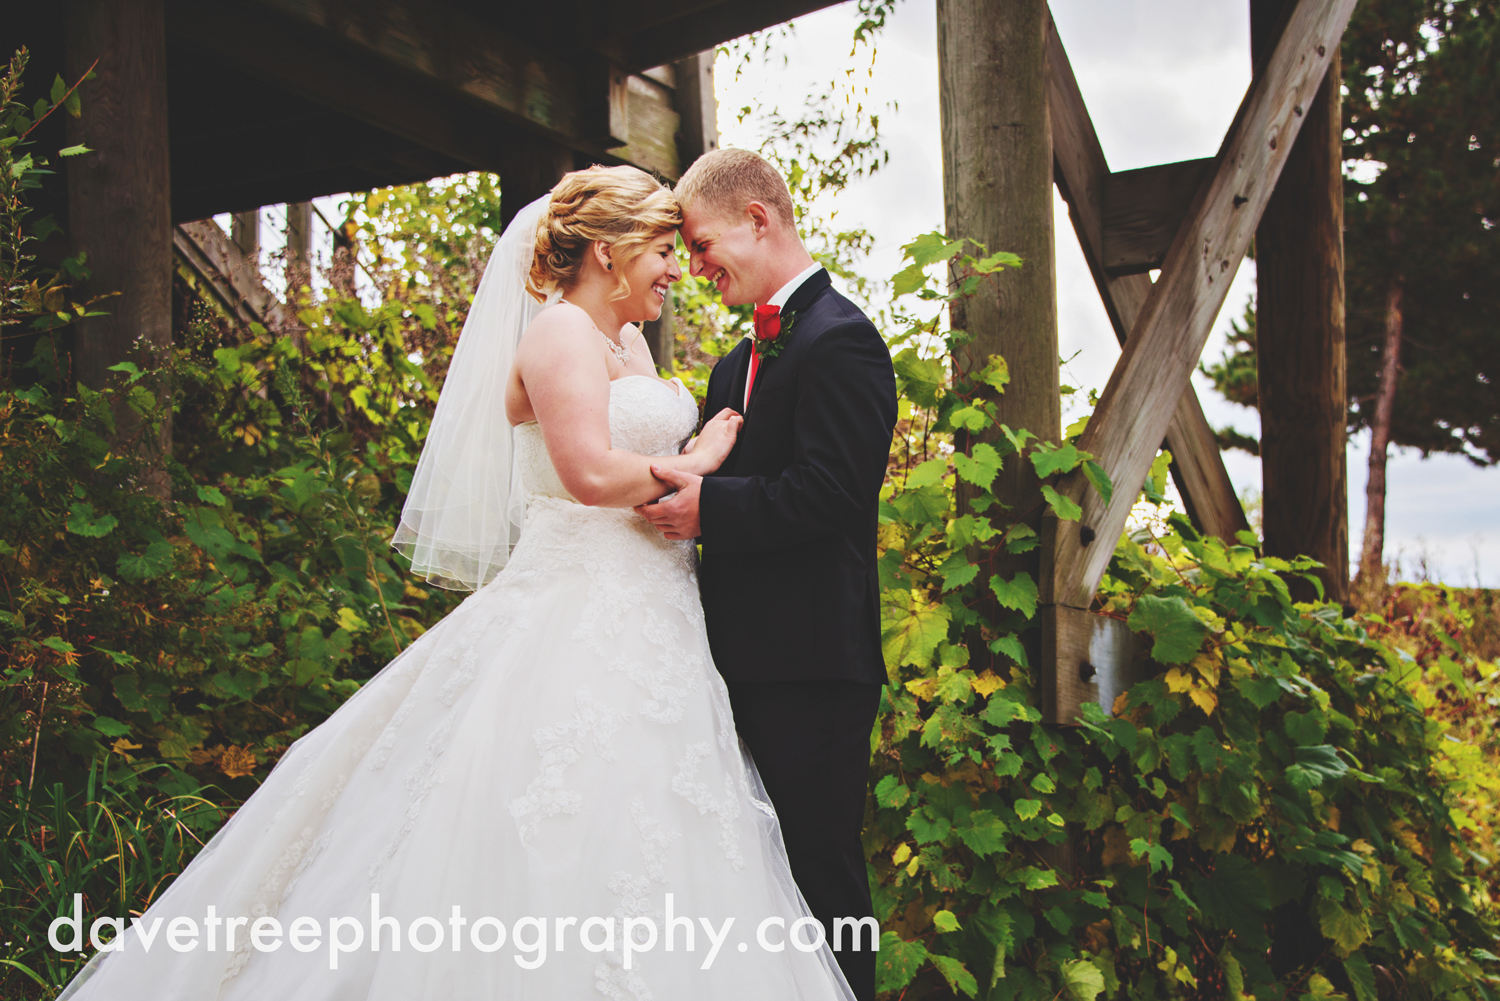 holland_wedding_photographer_21.jpg